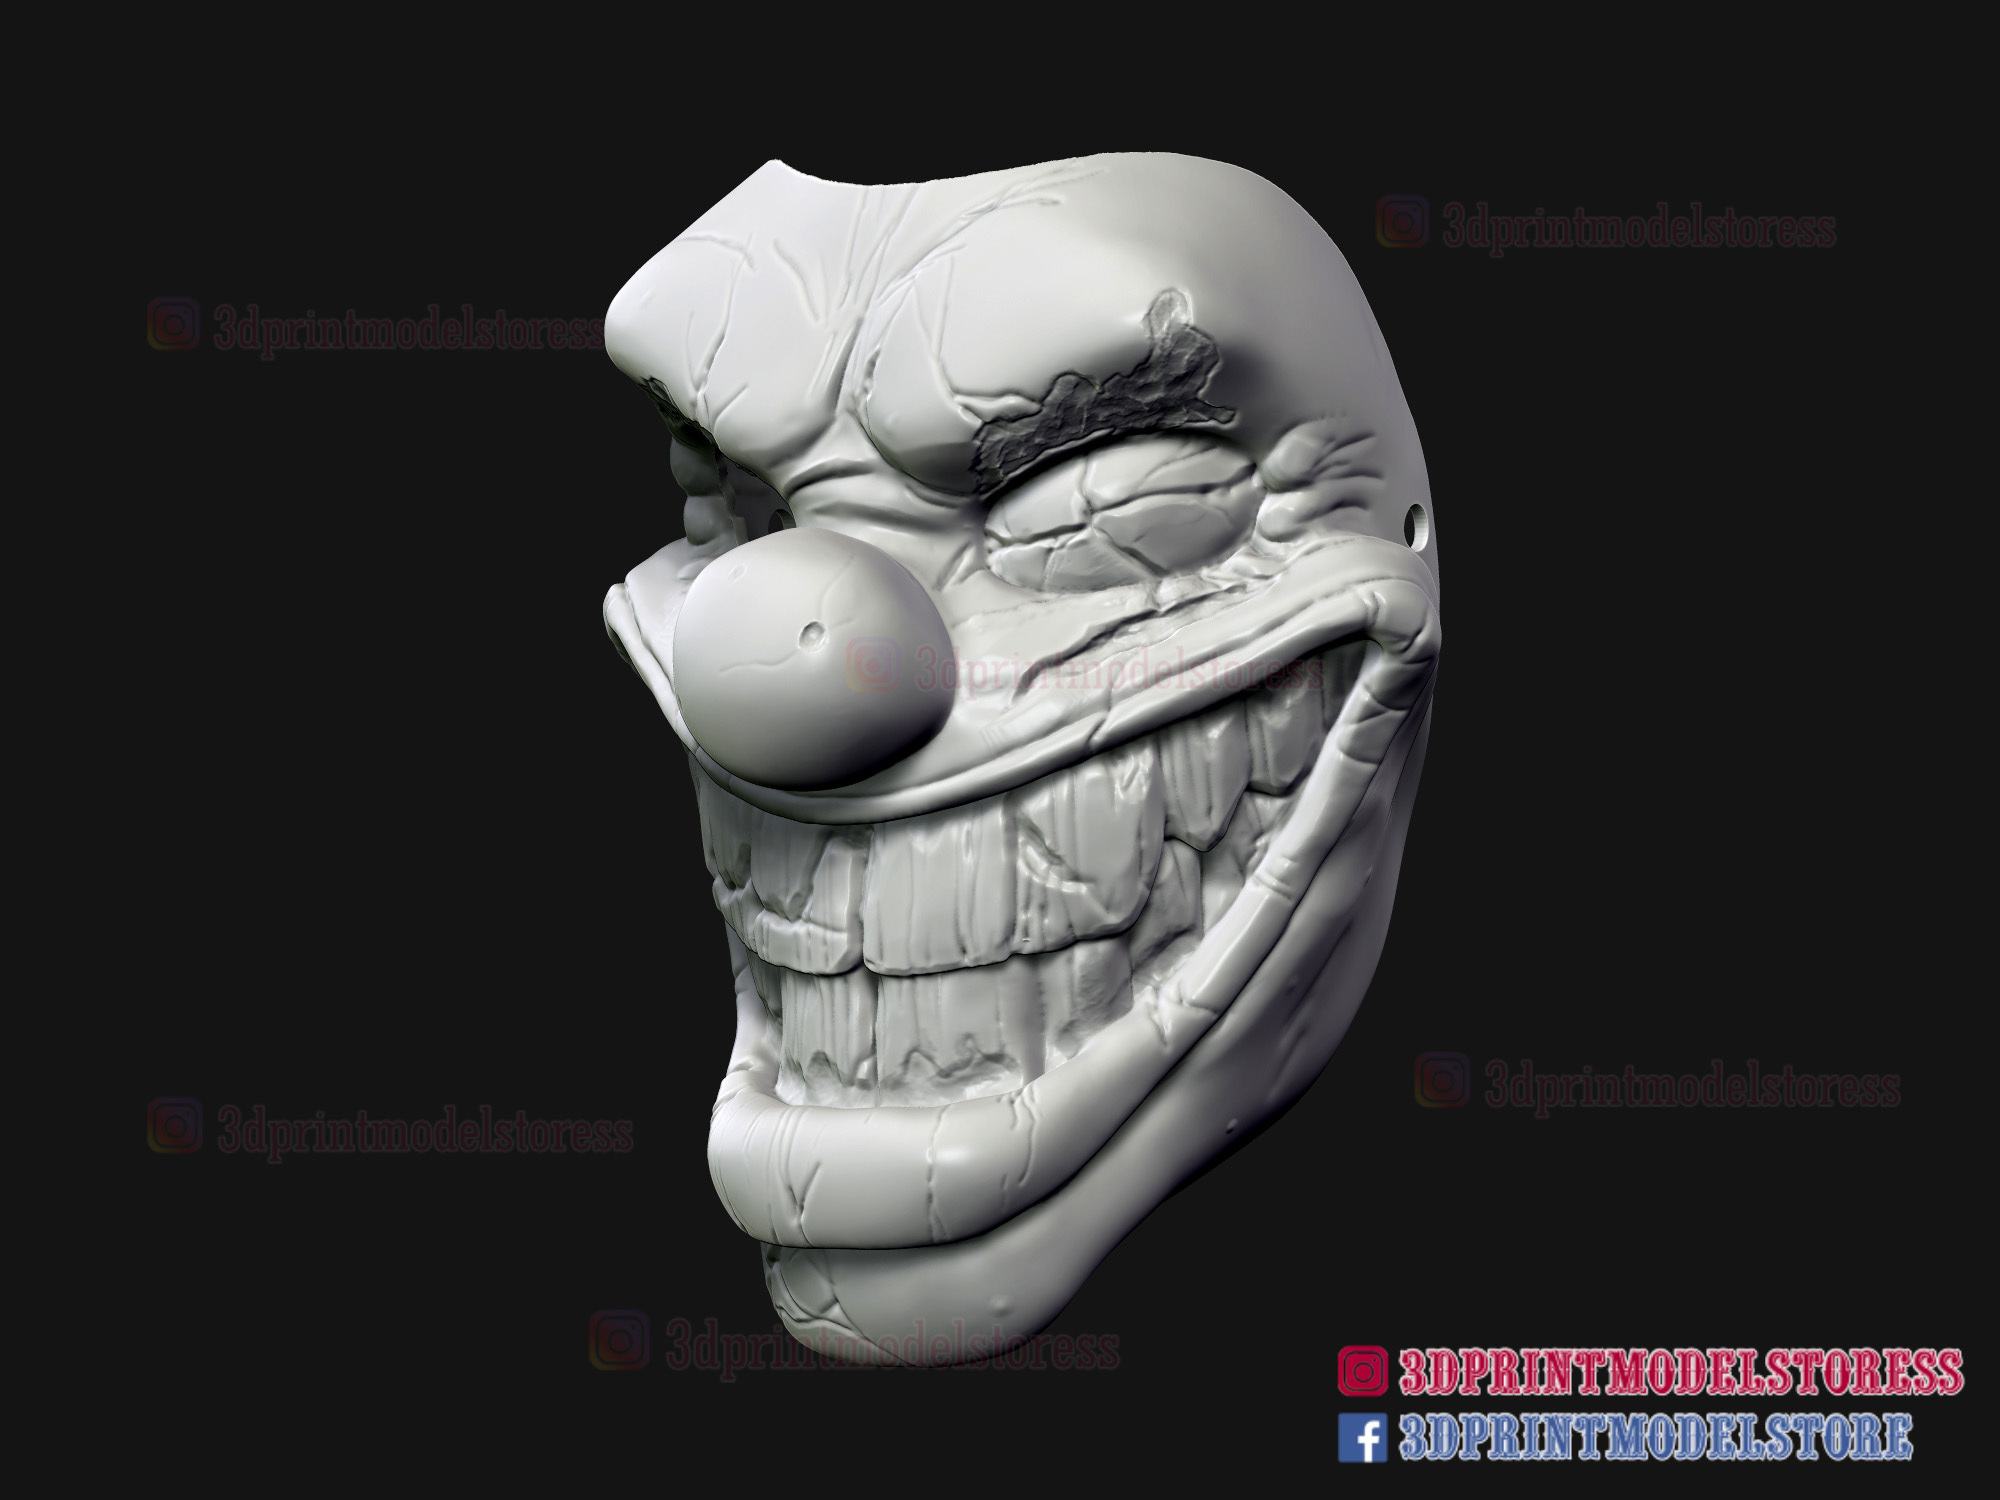 Twisted_metal_killer_clown-09.jpg Download STL file Twisted Metal Killer Clown Mask  • 3D printer model, 3DPrintModelStoreSS